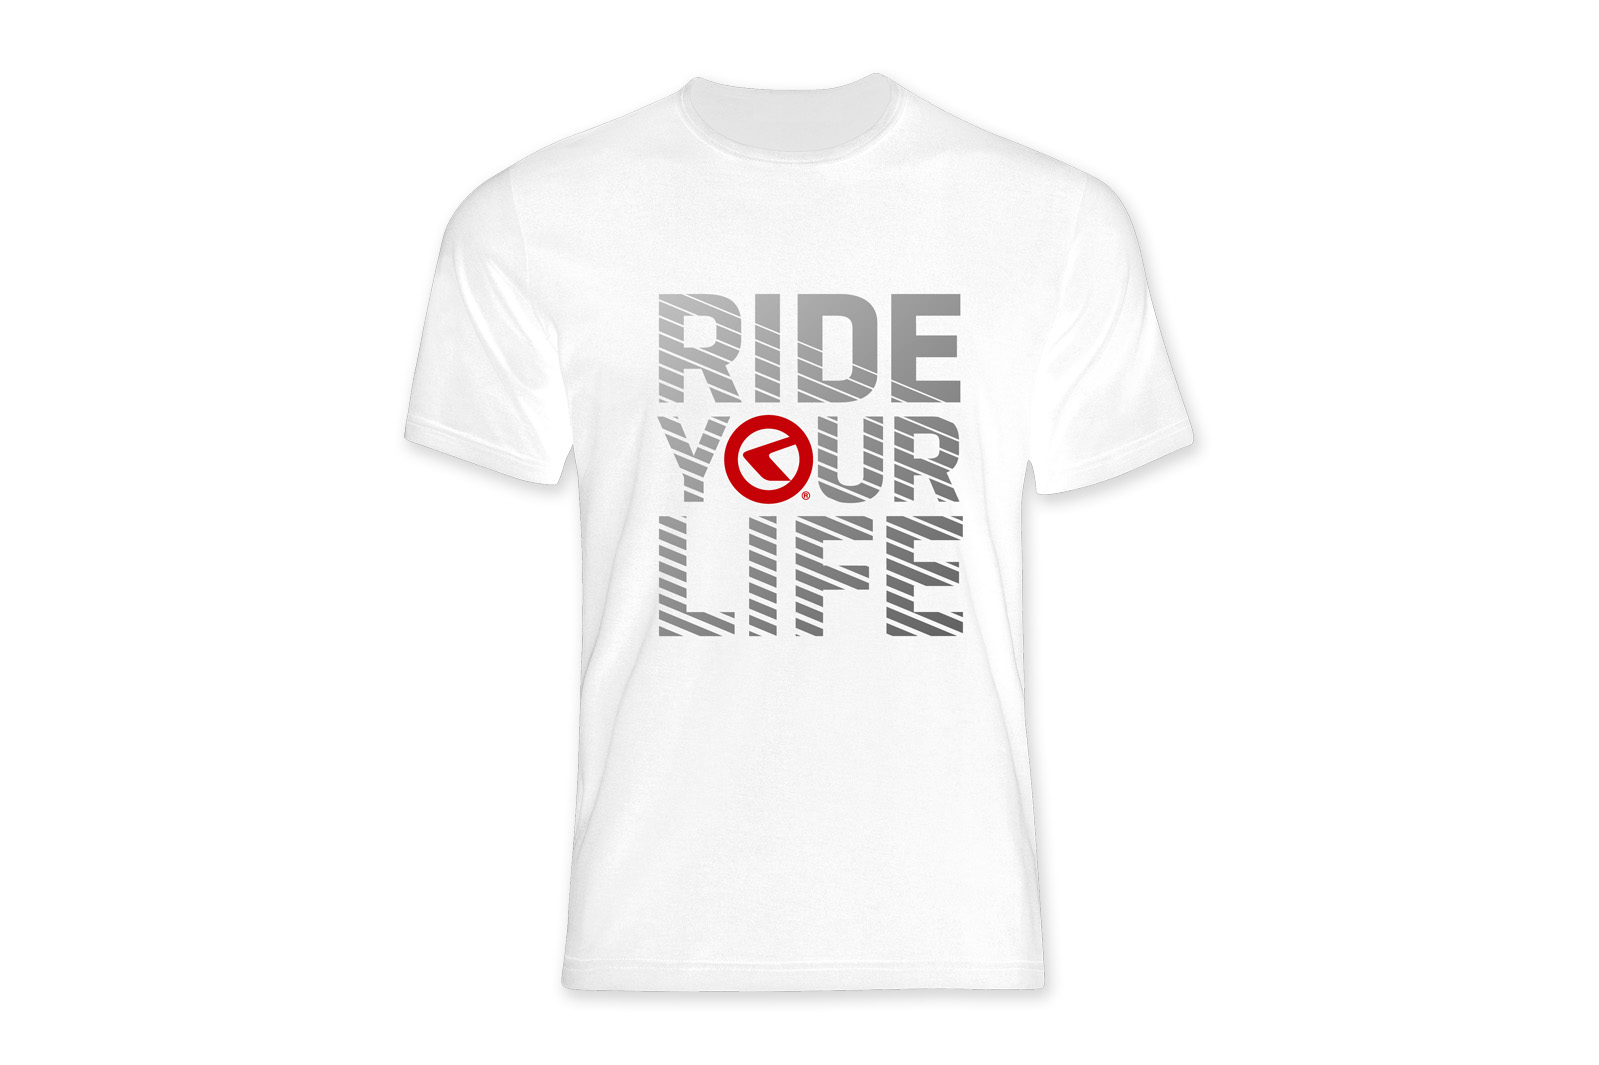 T-Shirt KELLYS RIDE YOUR LIFE kurzarm white - S - Mega Handelsgesellschaft